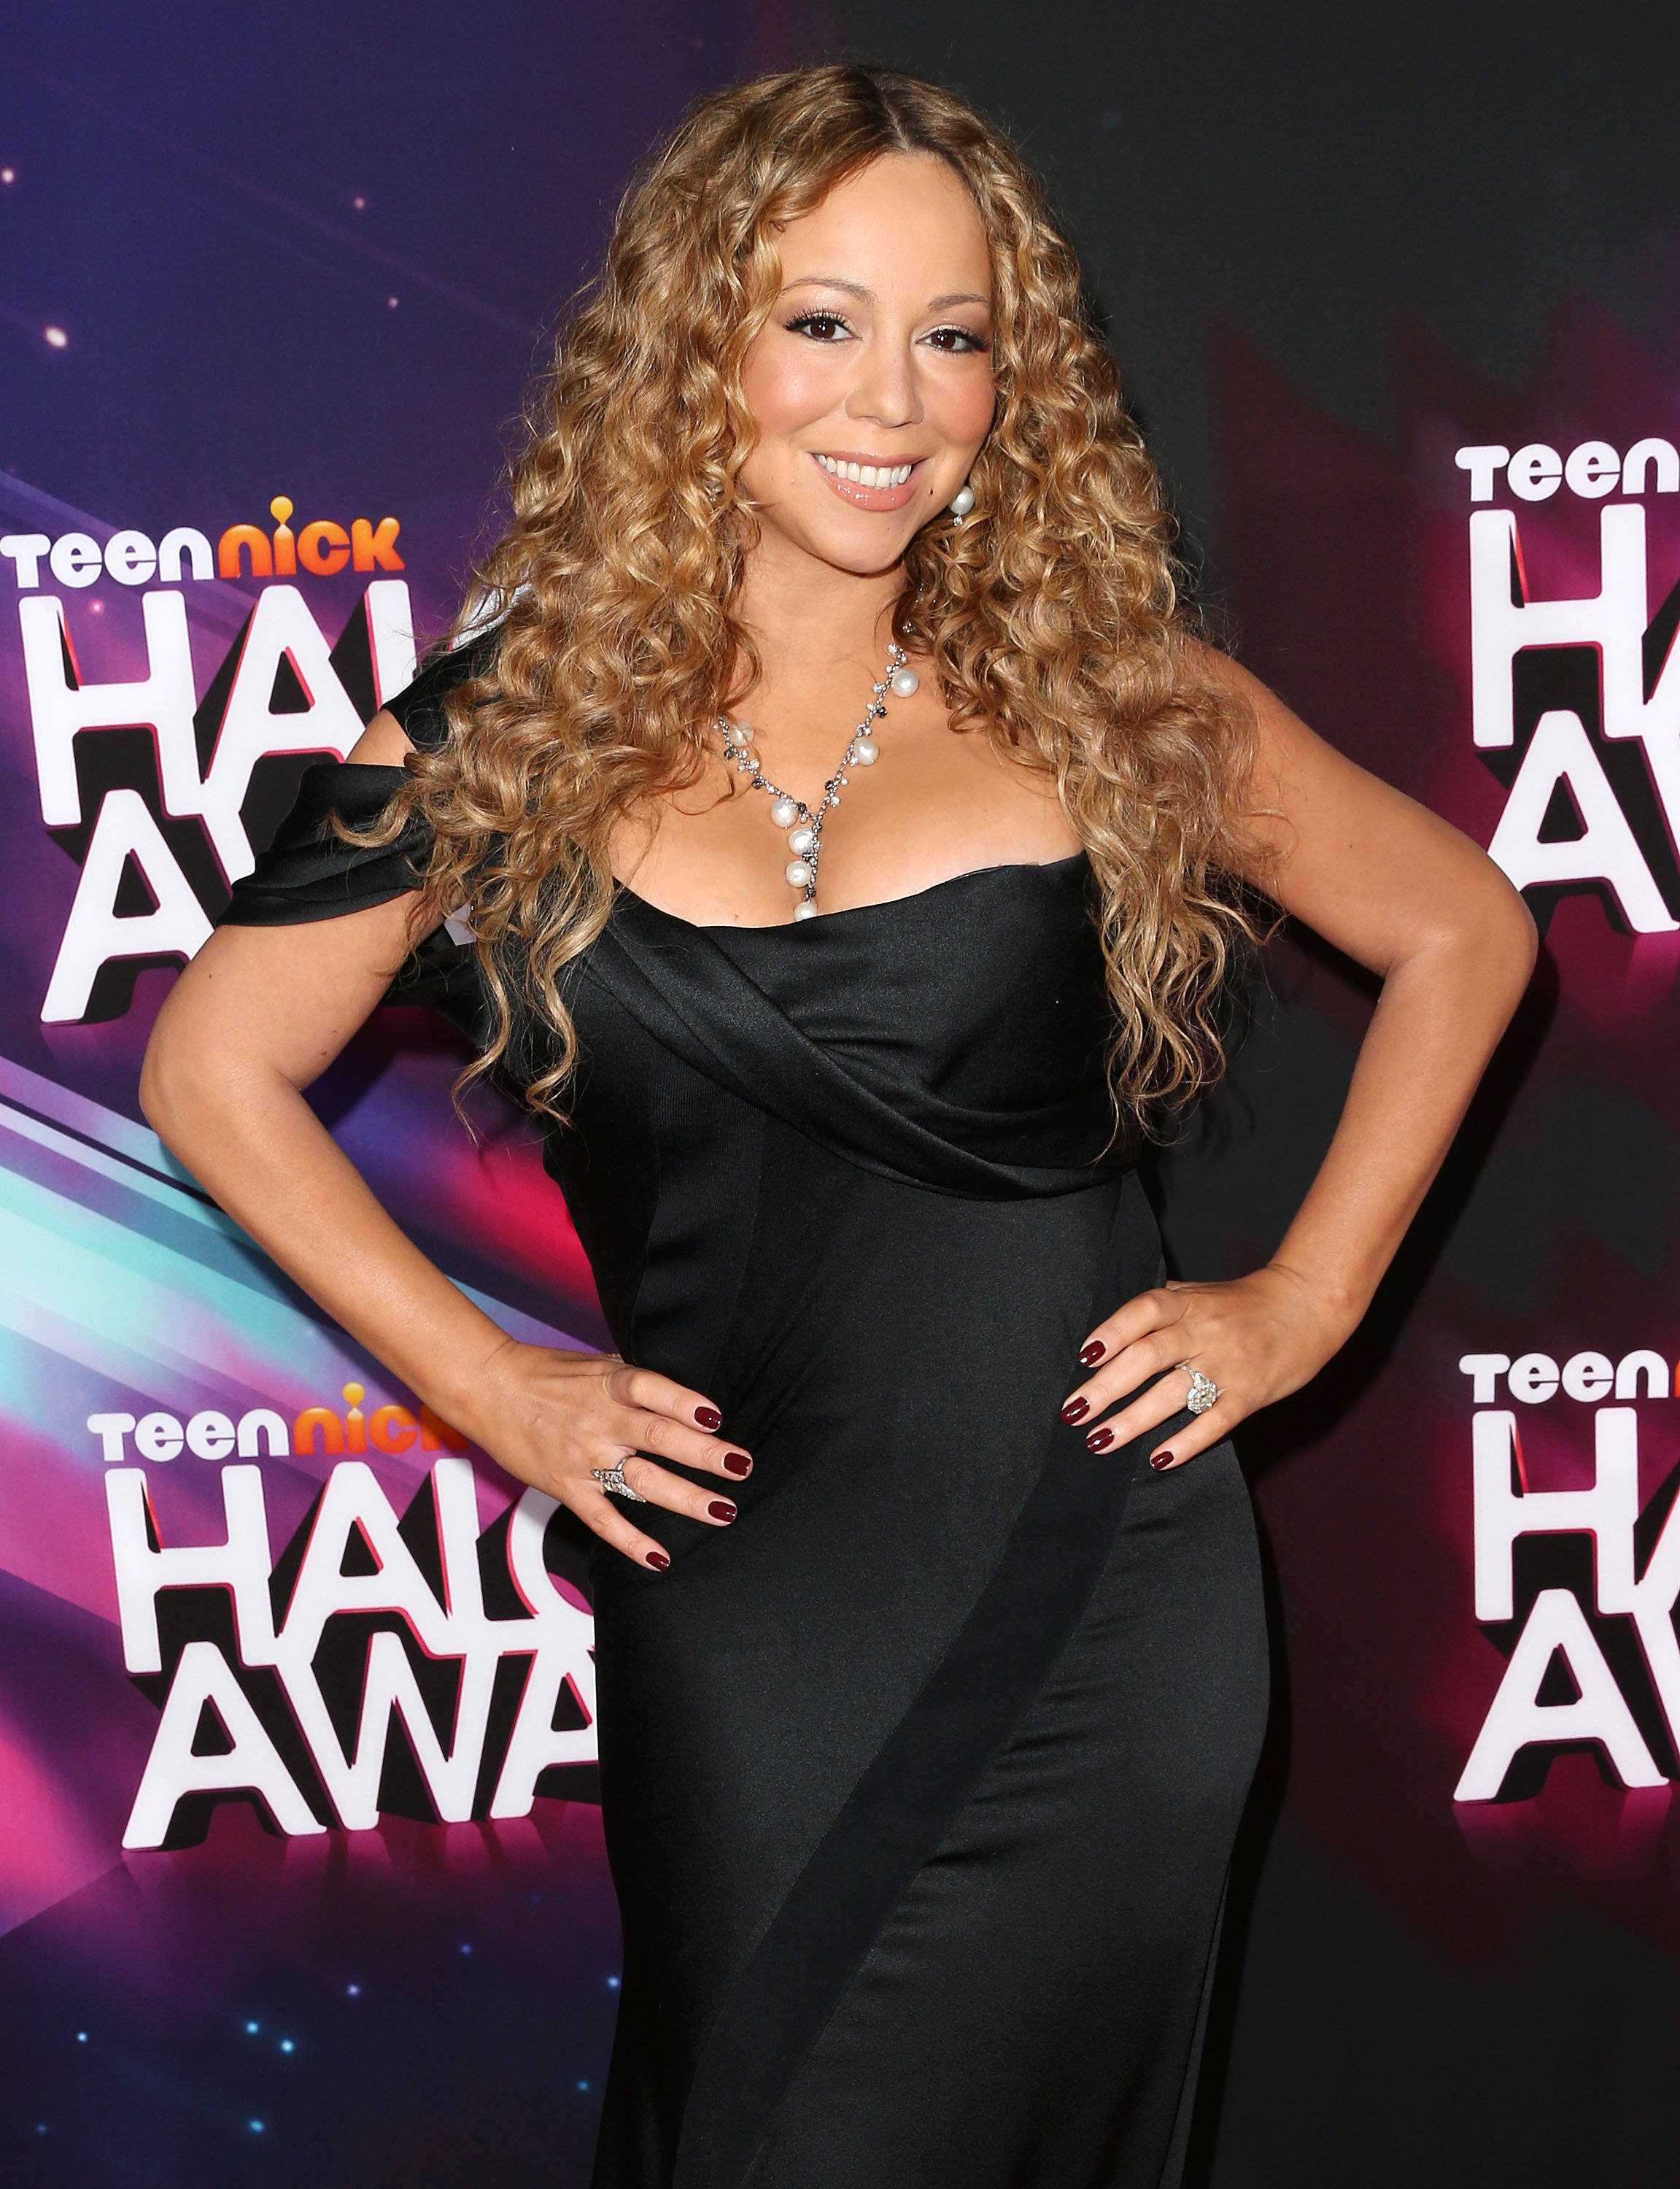 Mariah Carey attends TeenNick HALO Awards at The Hollywood Palladium on November 17, 2012, in Los Angeles, California. | Source: Getty Images.